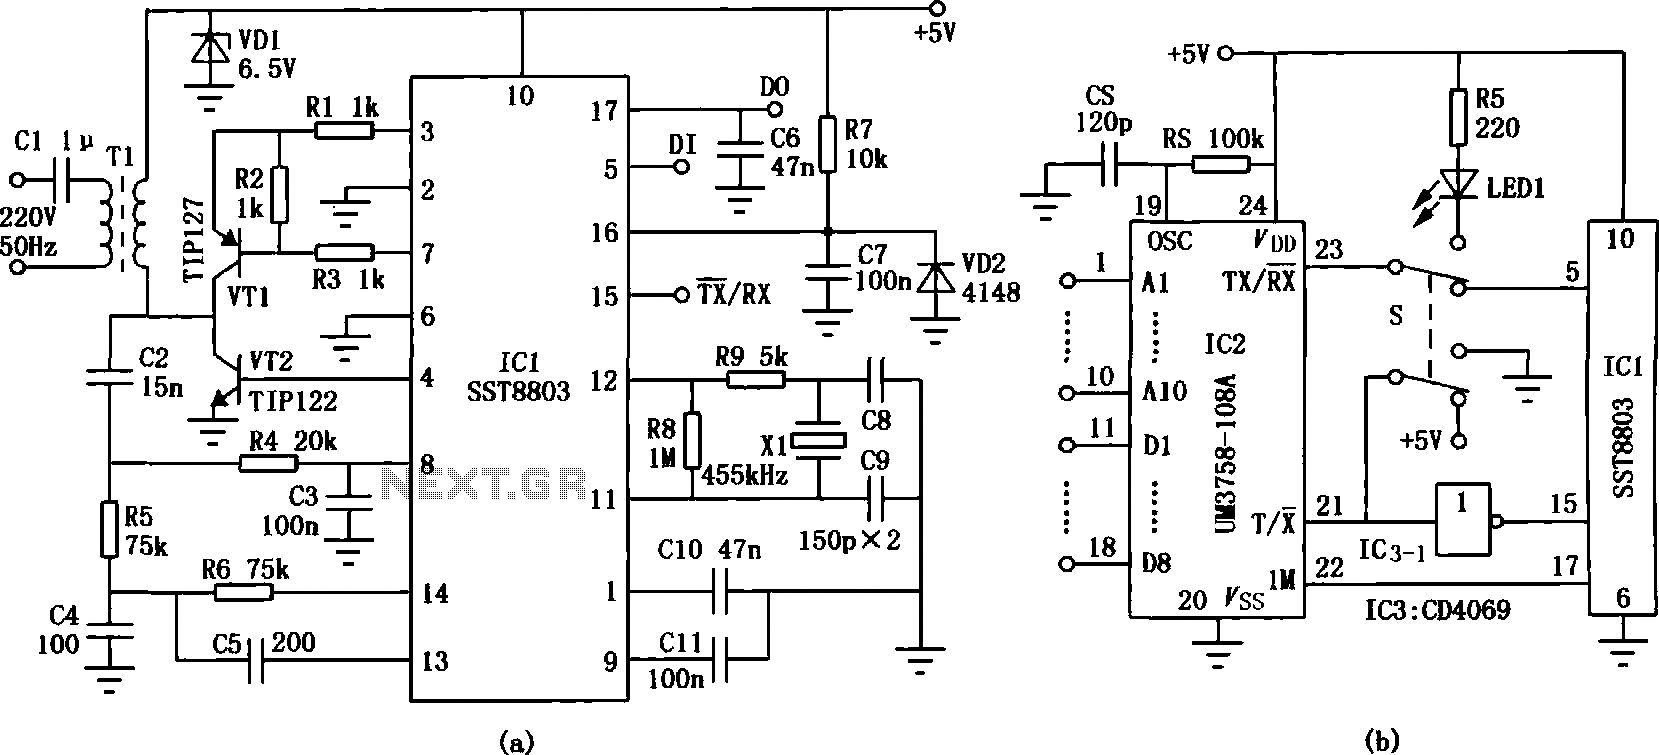 infrared wireless headphones circuit under infrared